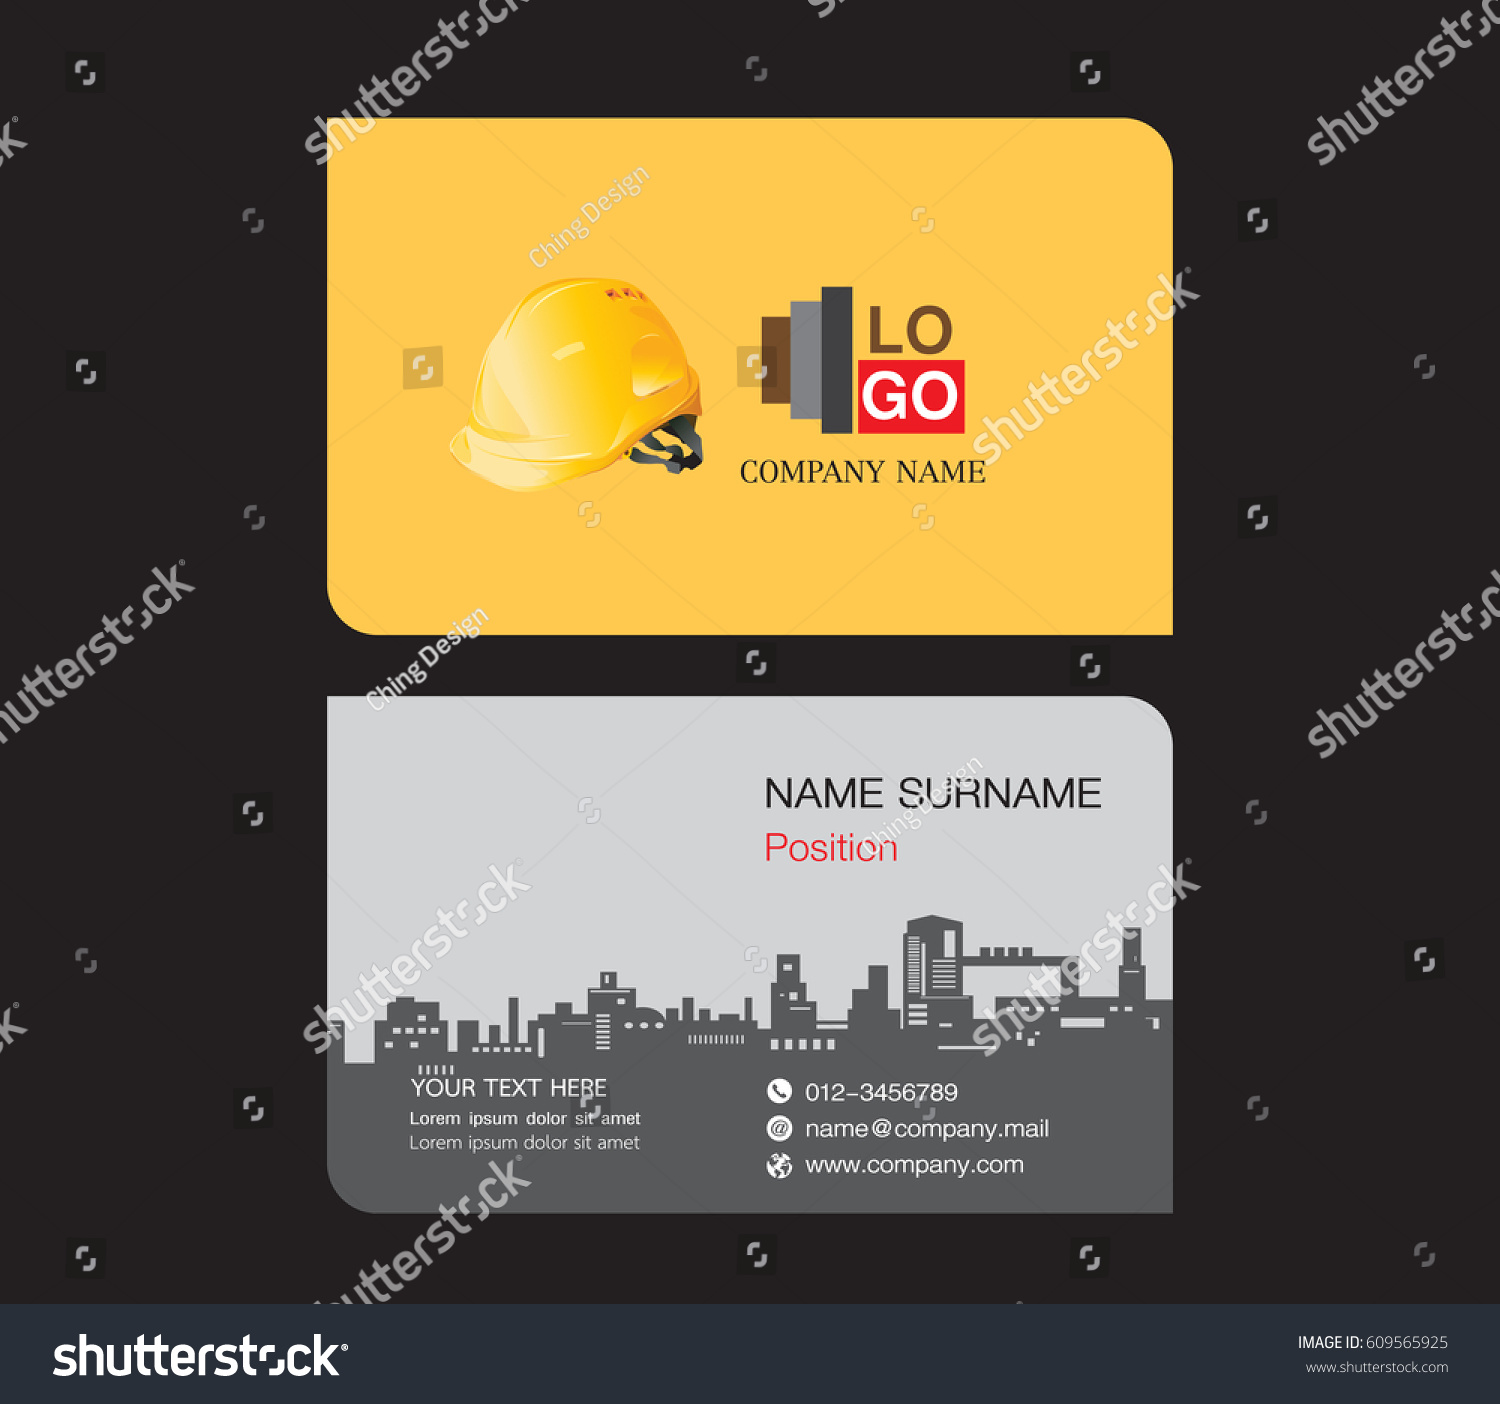 Business card template engineer name card stock vector 609565925 business card template engineer name card magicingreecefo Image collections